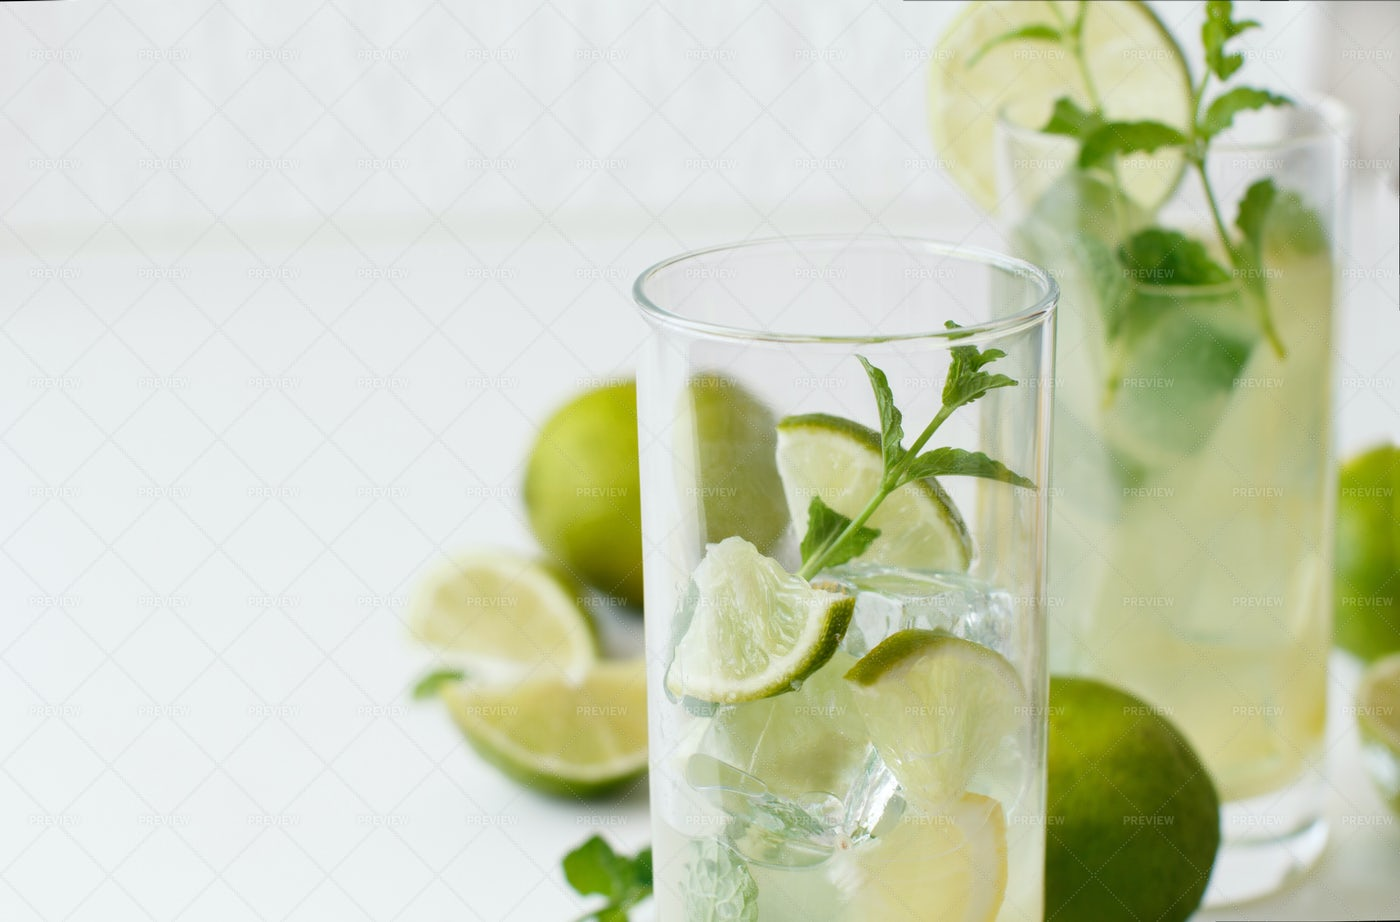 Lime And Mint Drink Background: Stock Photos